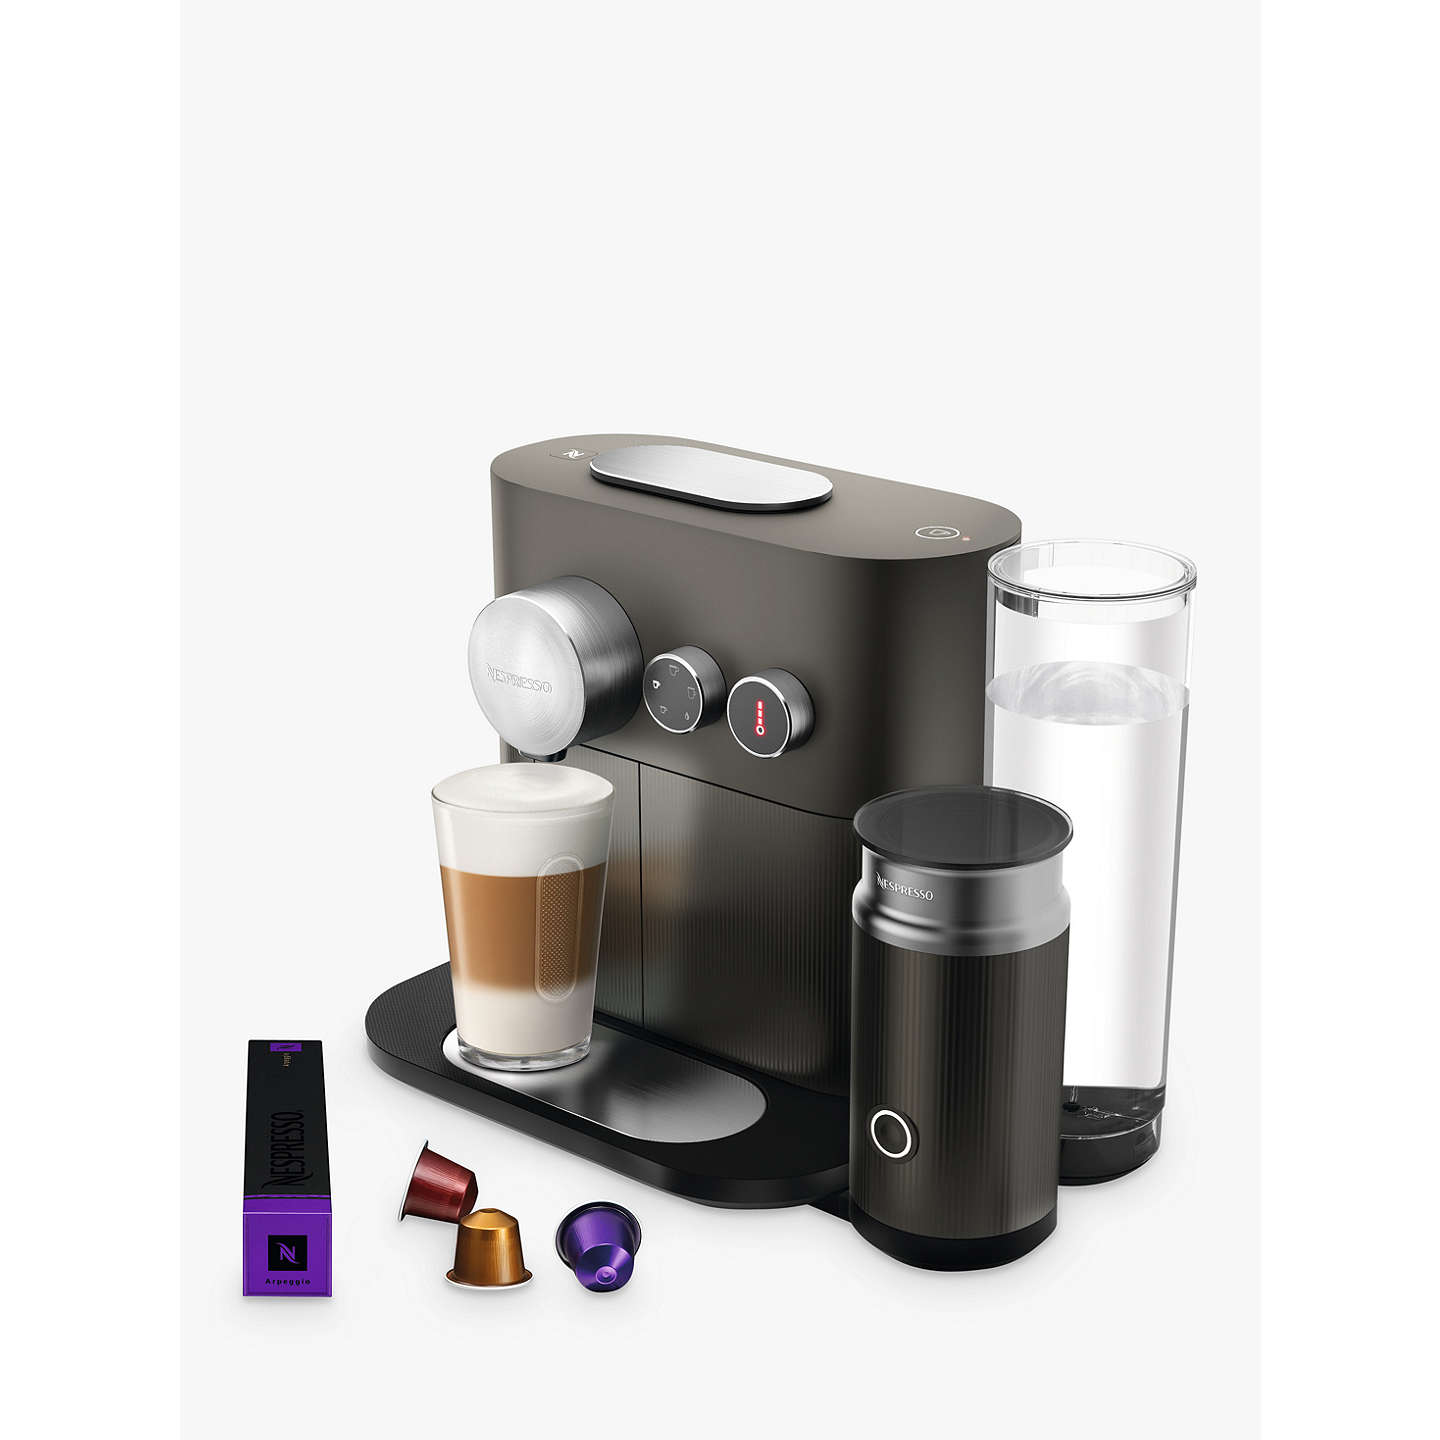 nespresso expert m500 coffee machine with aeroccino by magimix grey at john lewis. Black Bedroom Furniture Sets. Home Design Ideas